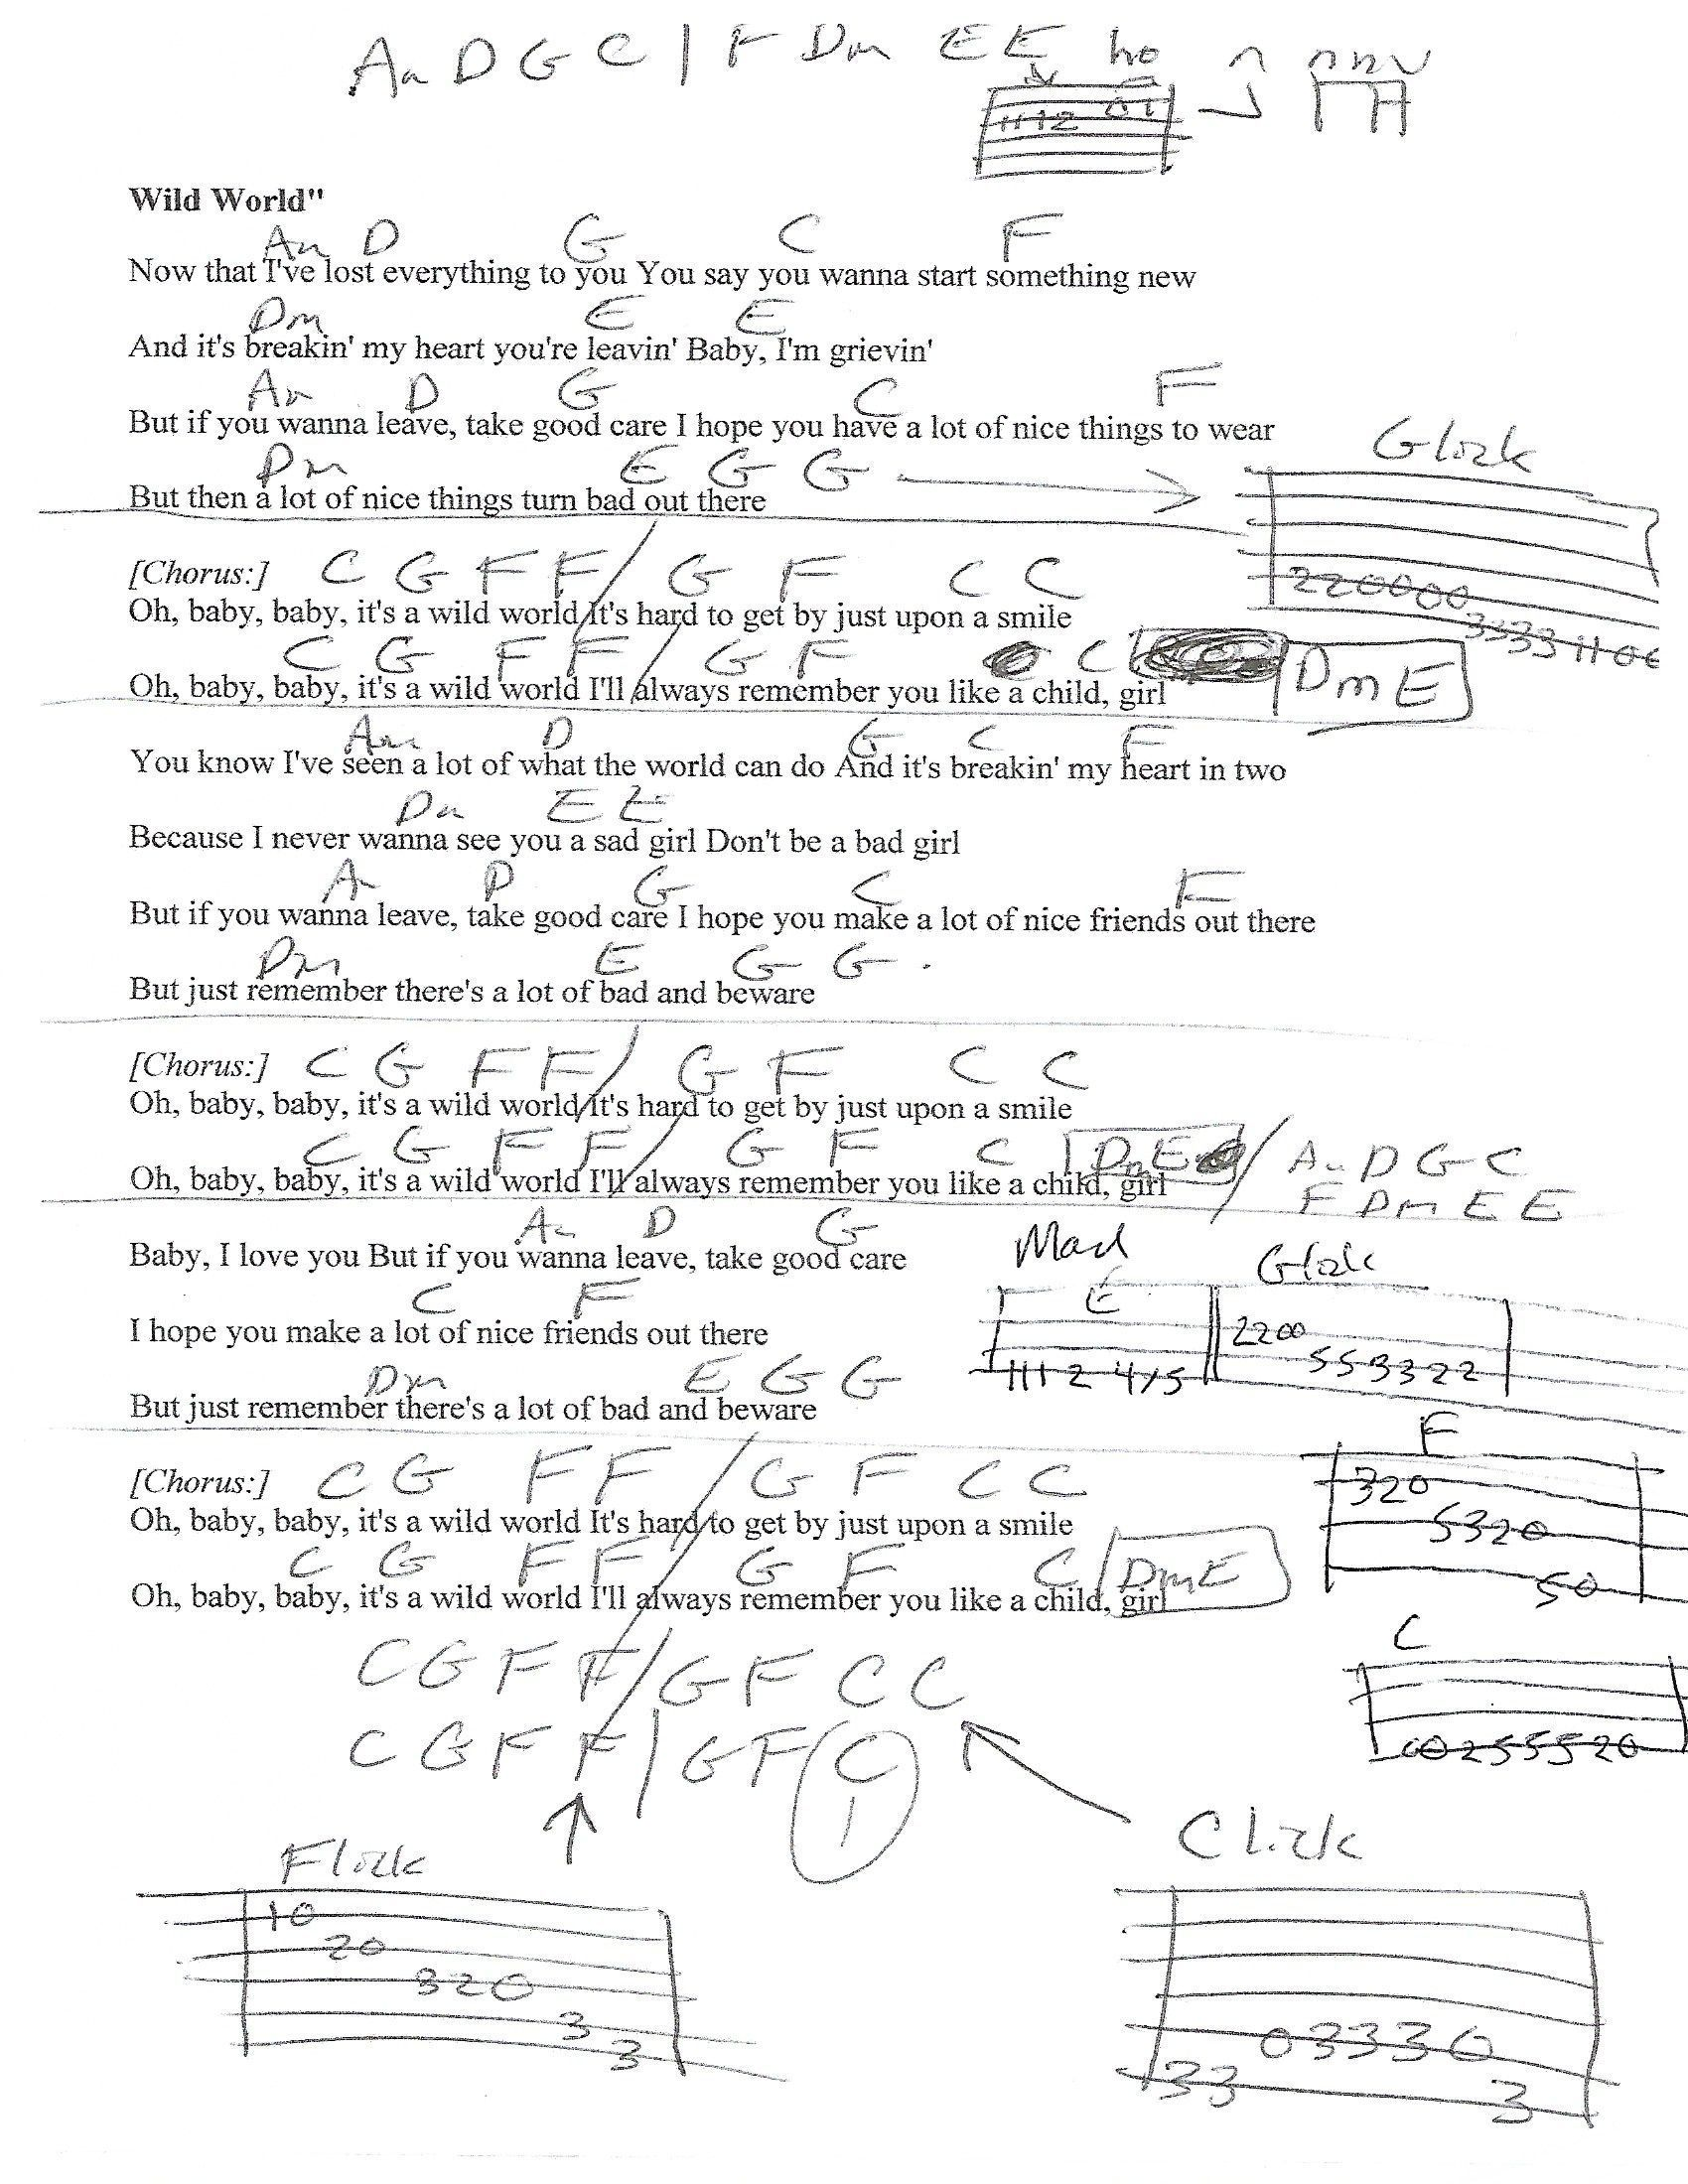 Wild World Cat Stevens Guitar Lesson Chord Chart With Lyrics